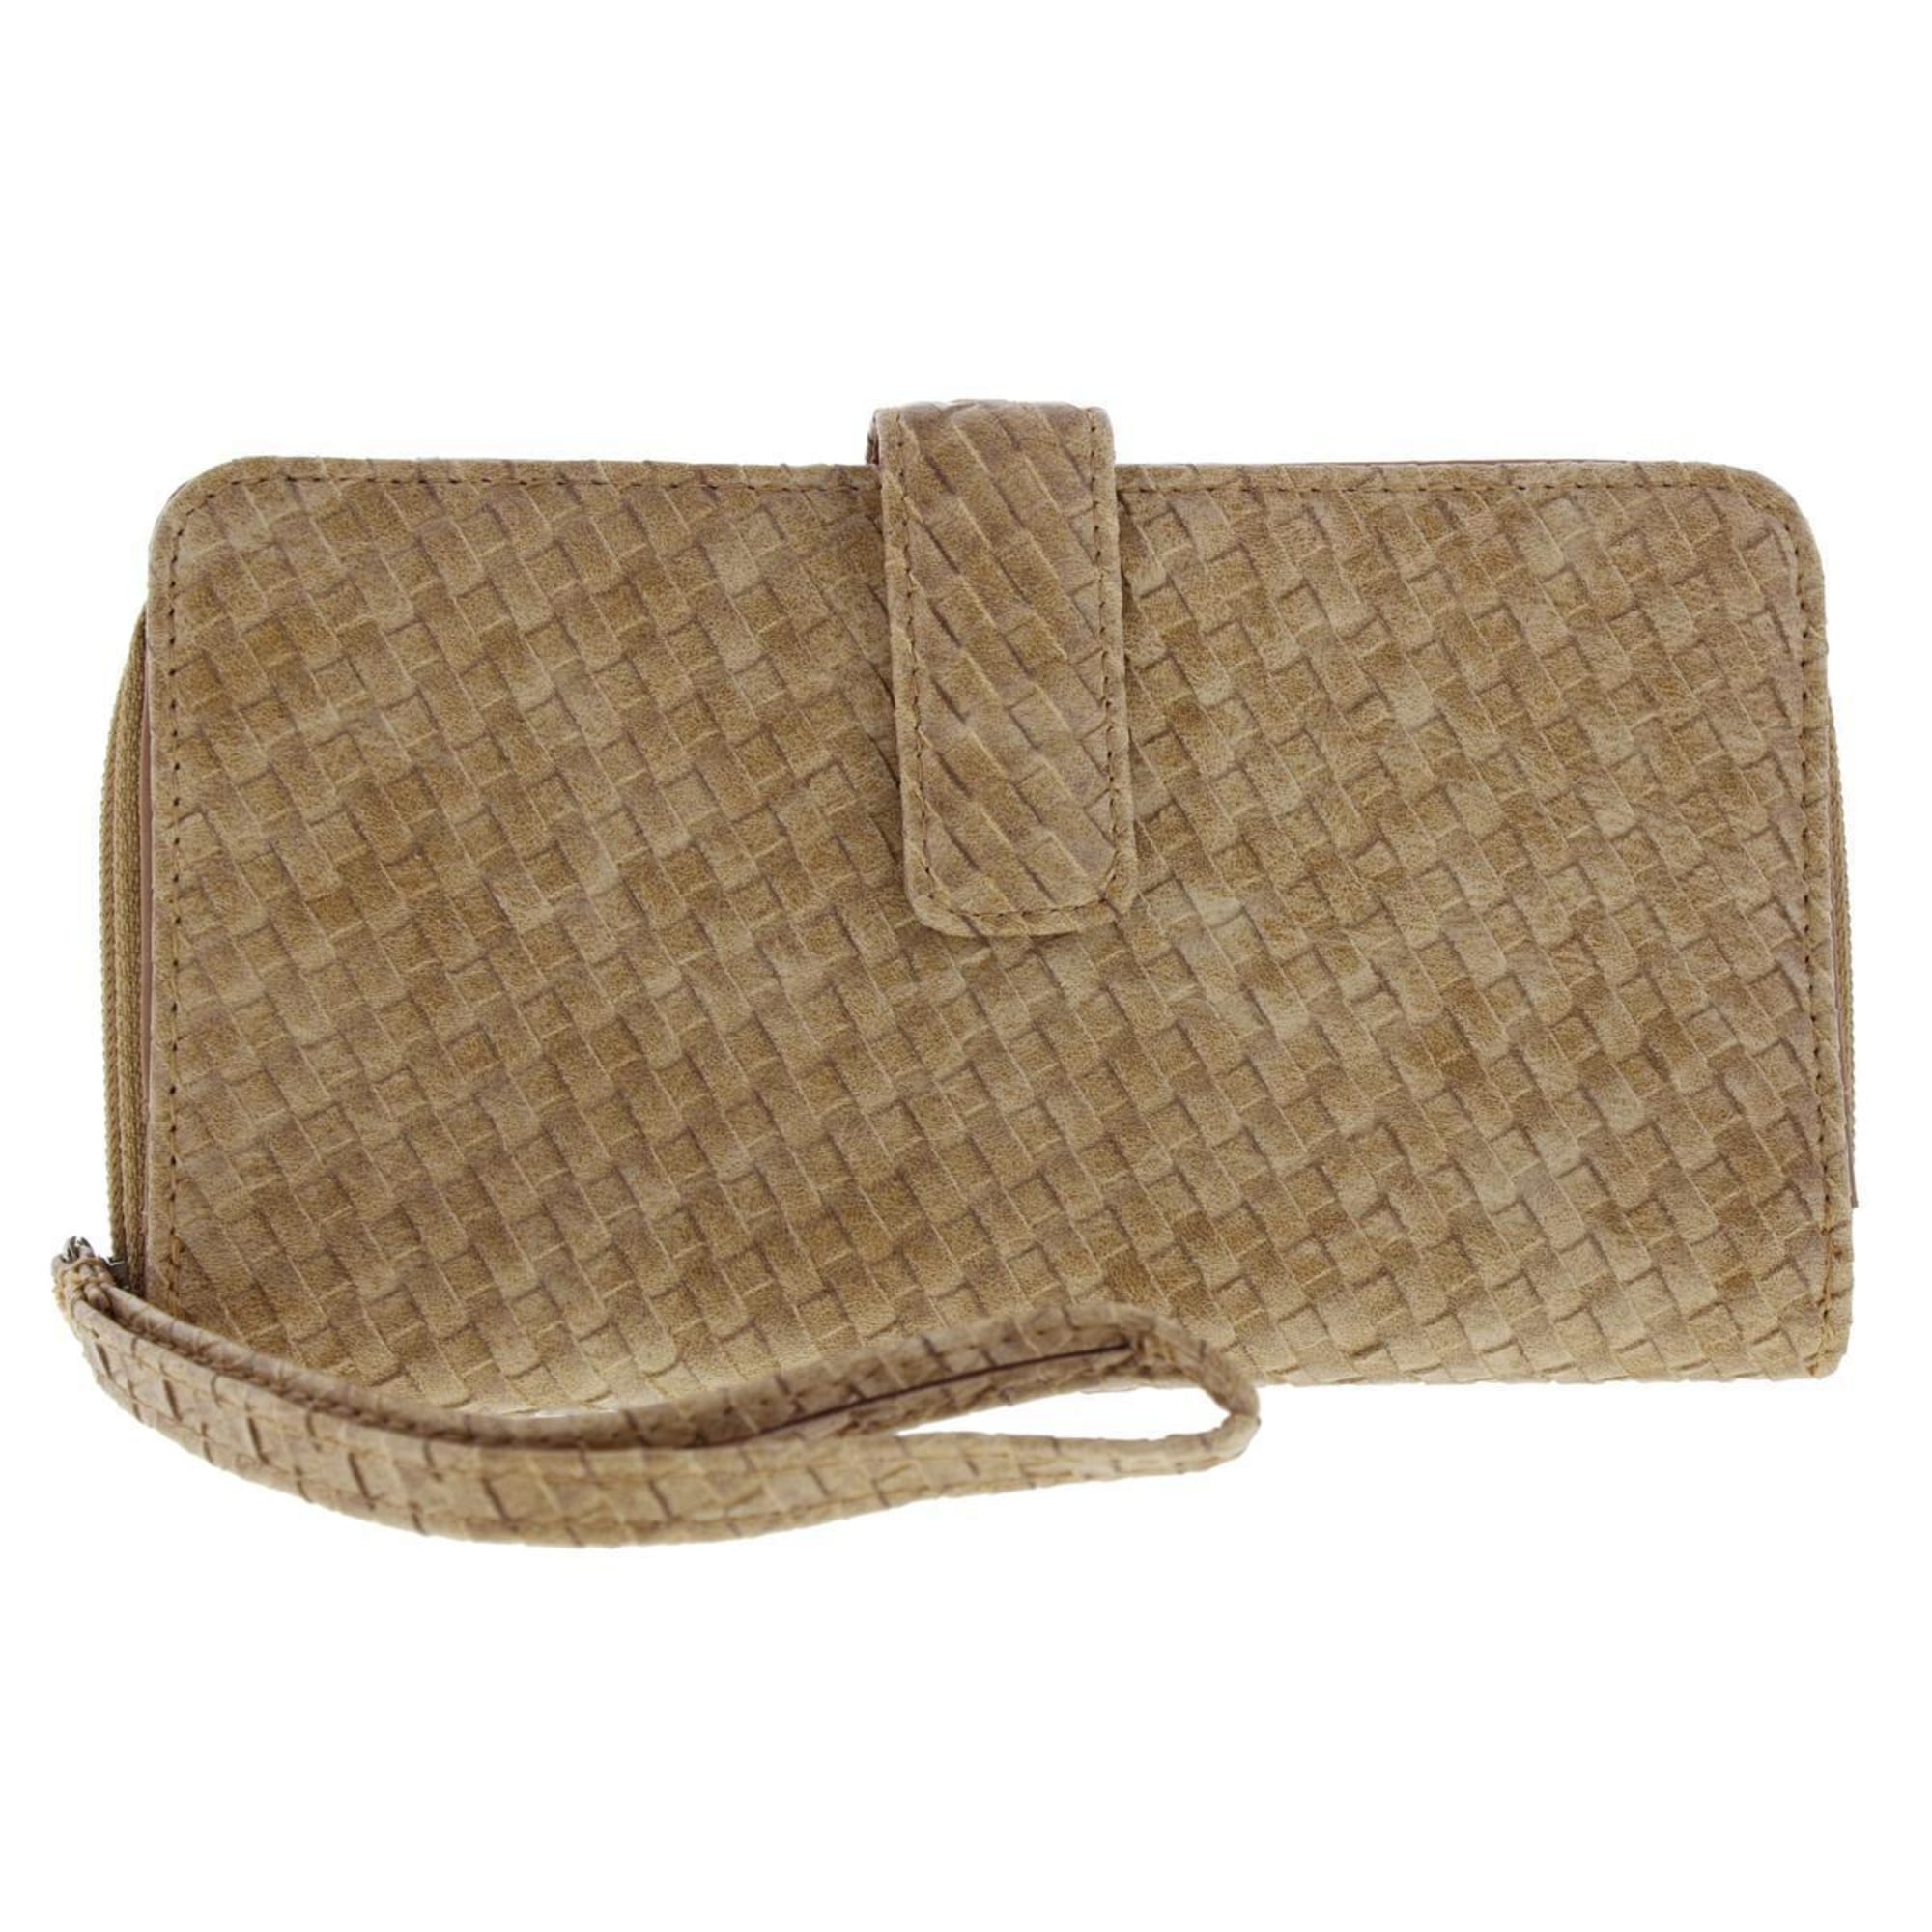 Portefeuille KENNETH COLE simili cuir  beige